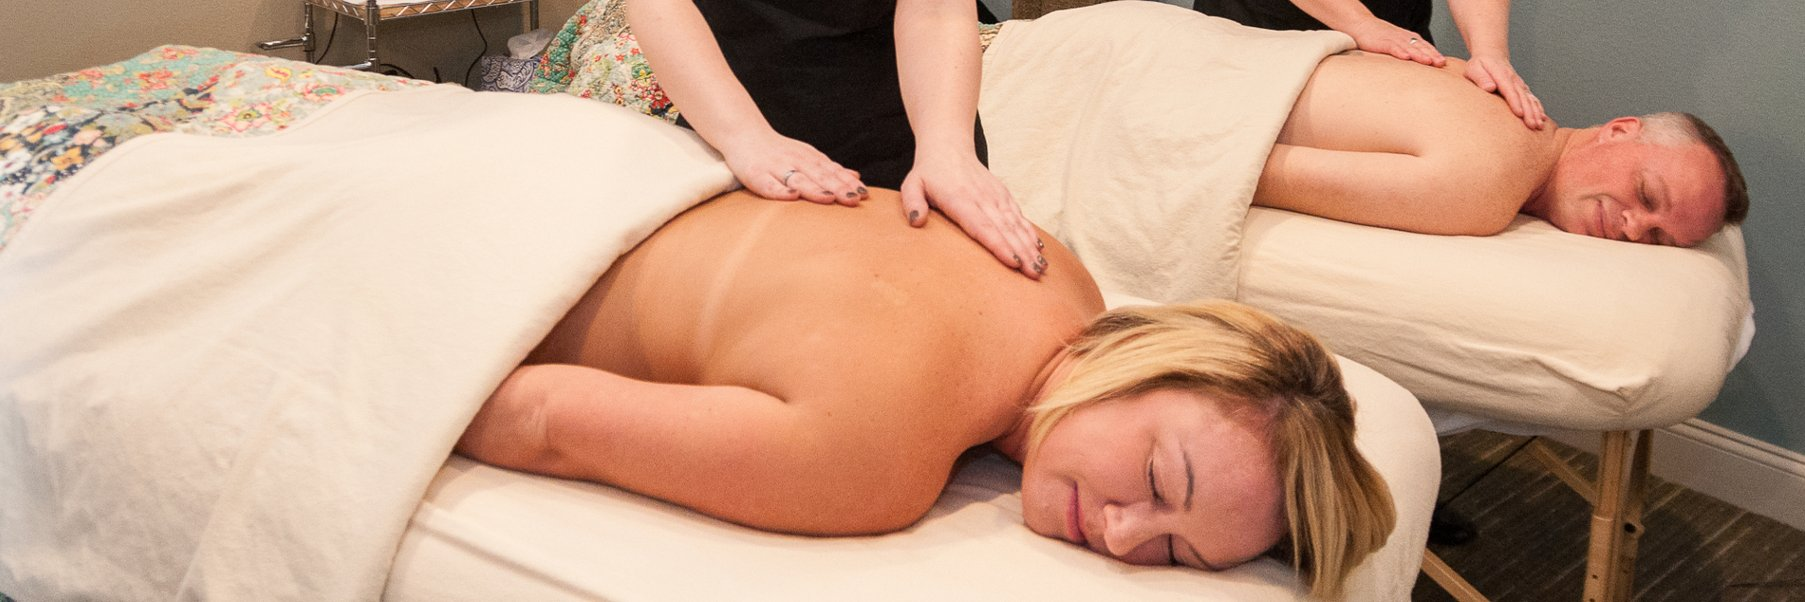 Solstice North Couples Massage